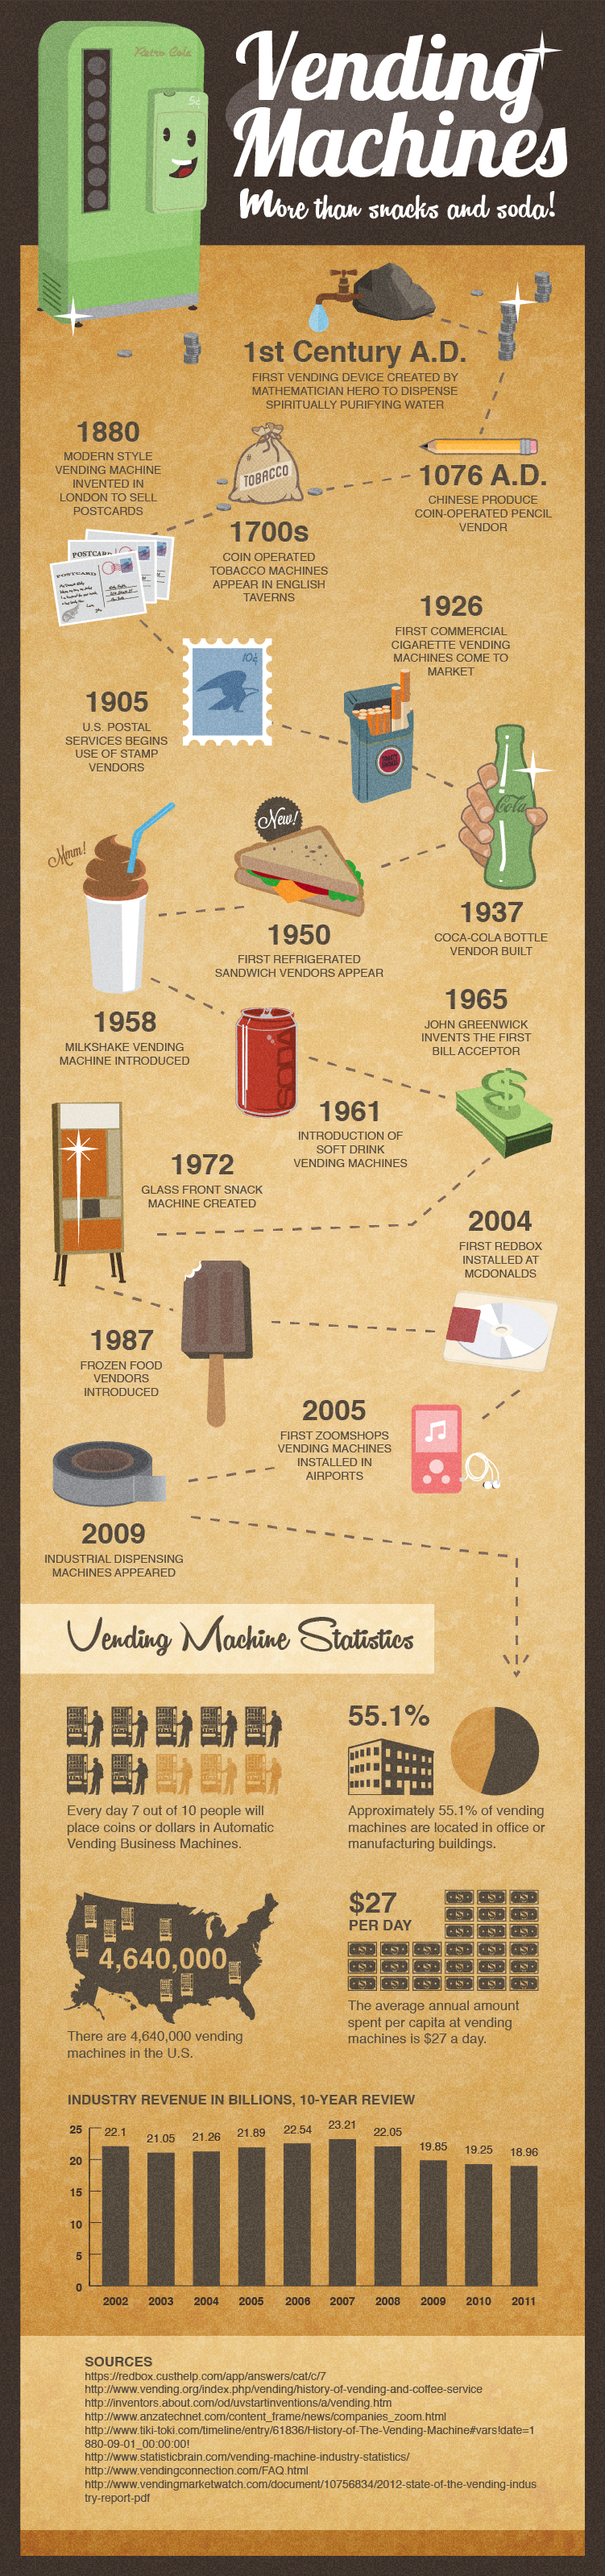 The History of Vending Machines by The Manufacturer